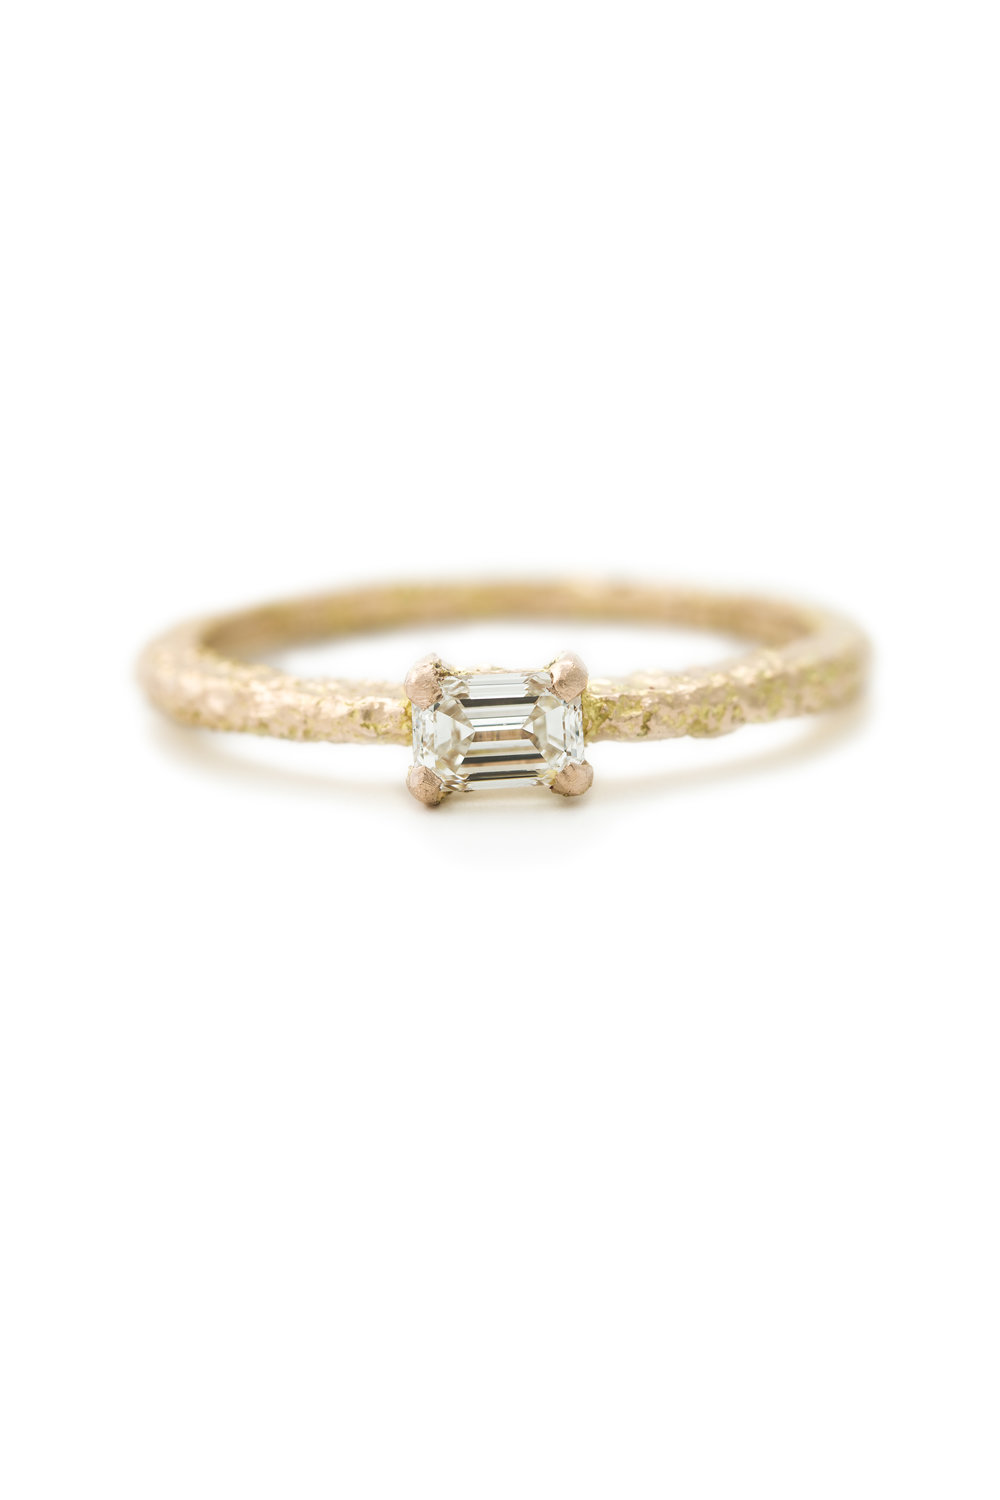 White emerald cut diamond ring in rose gold